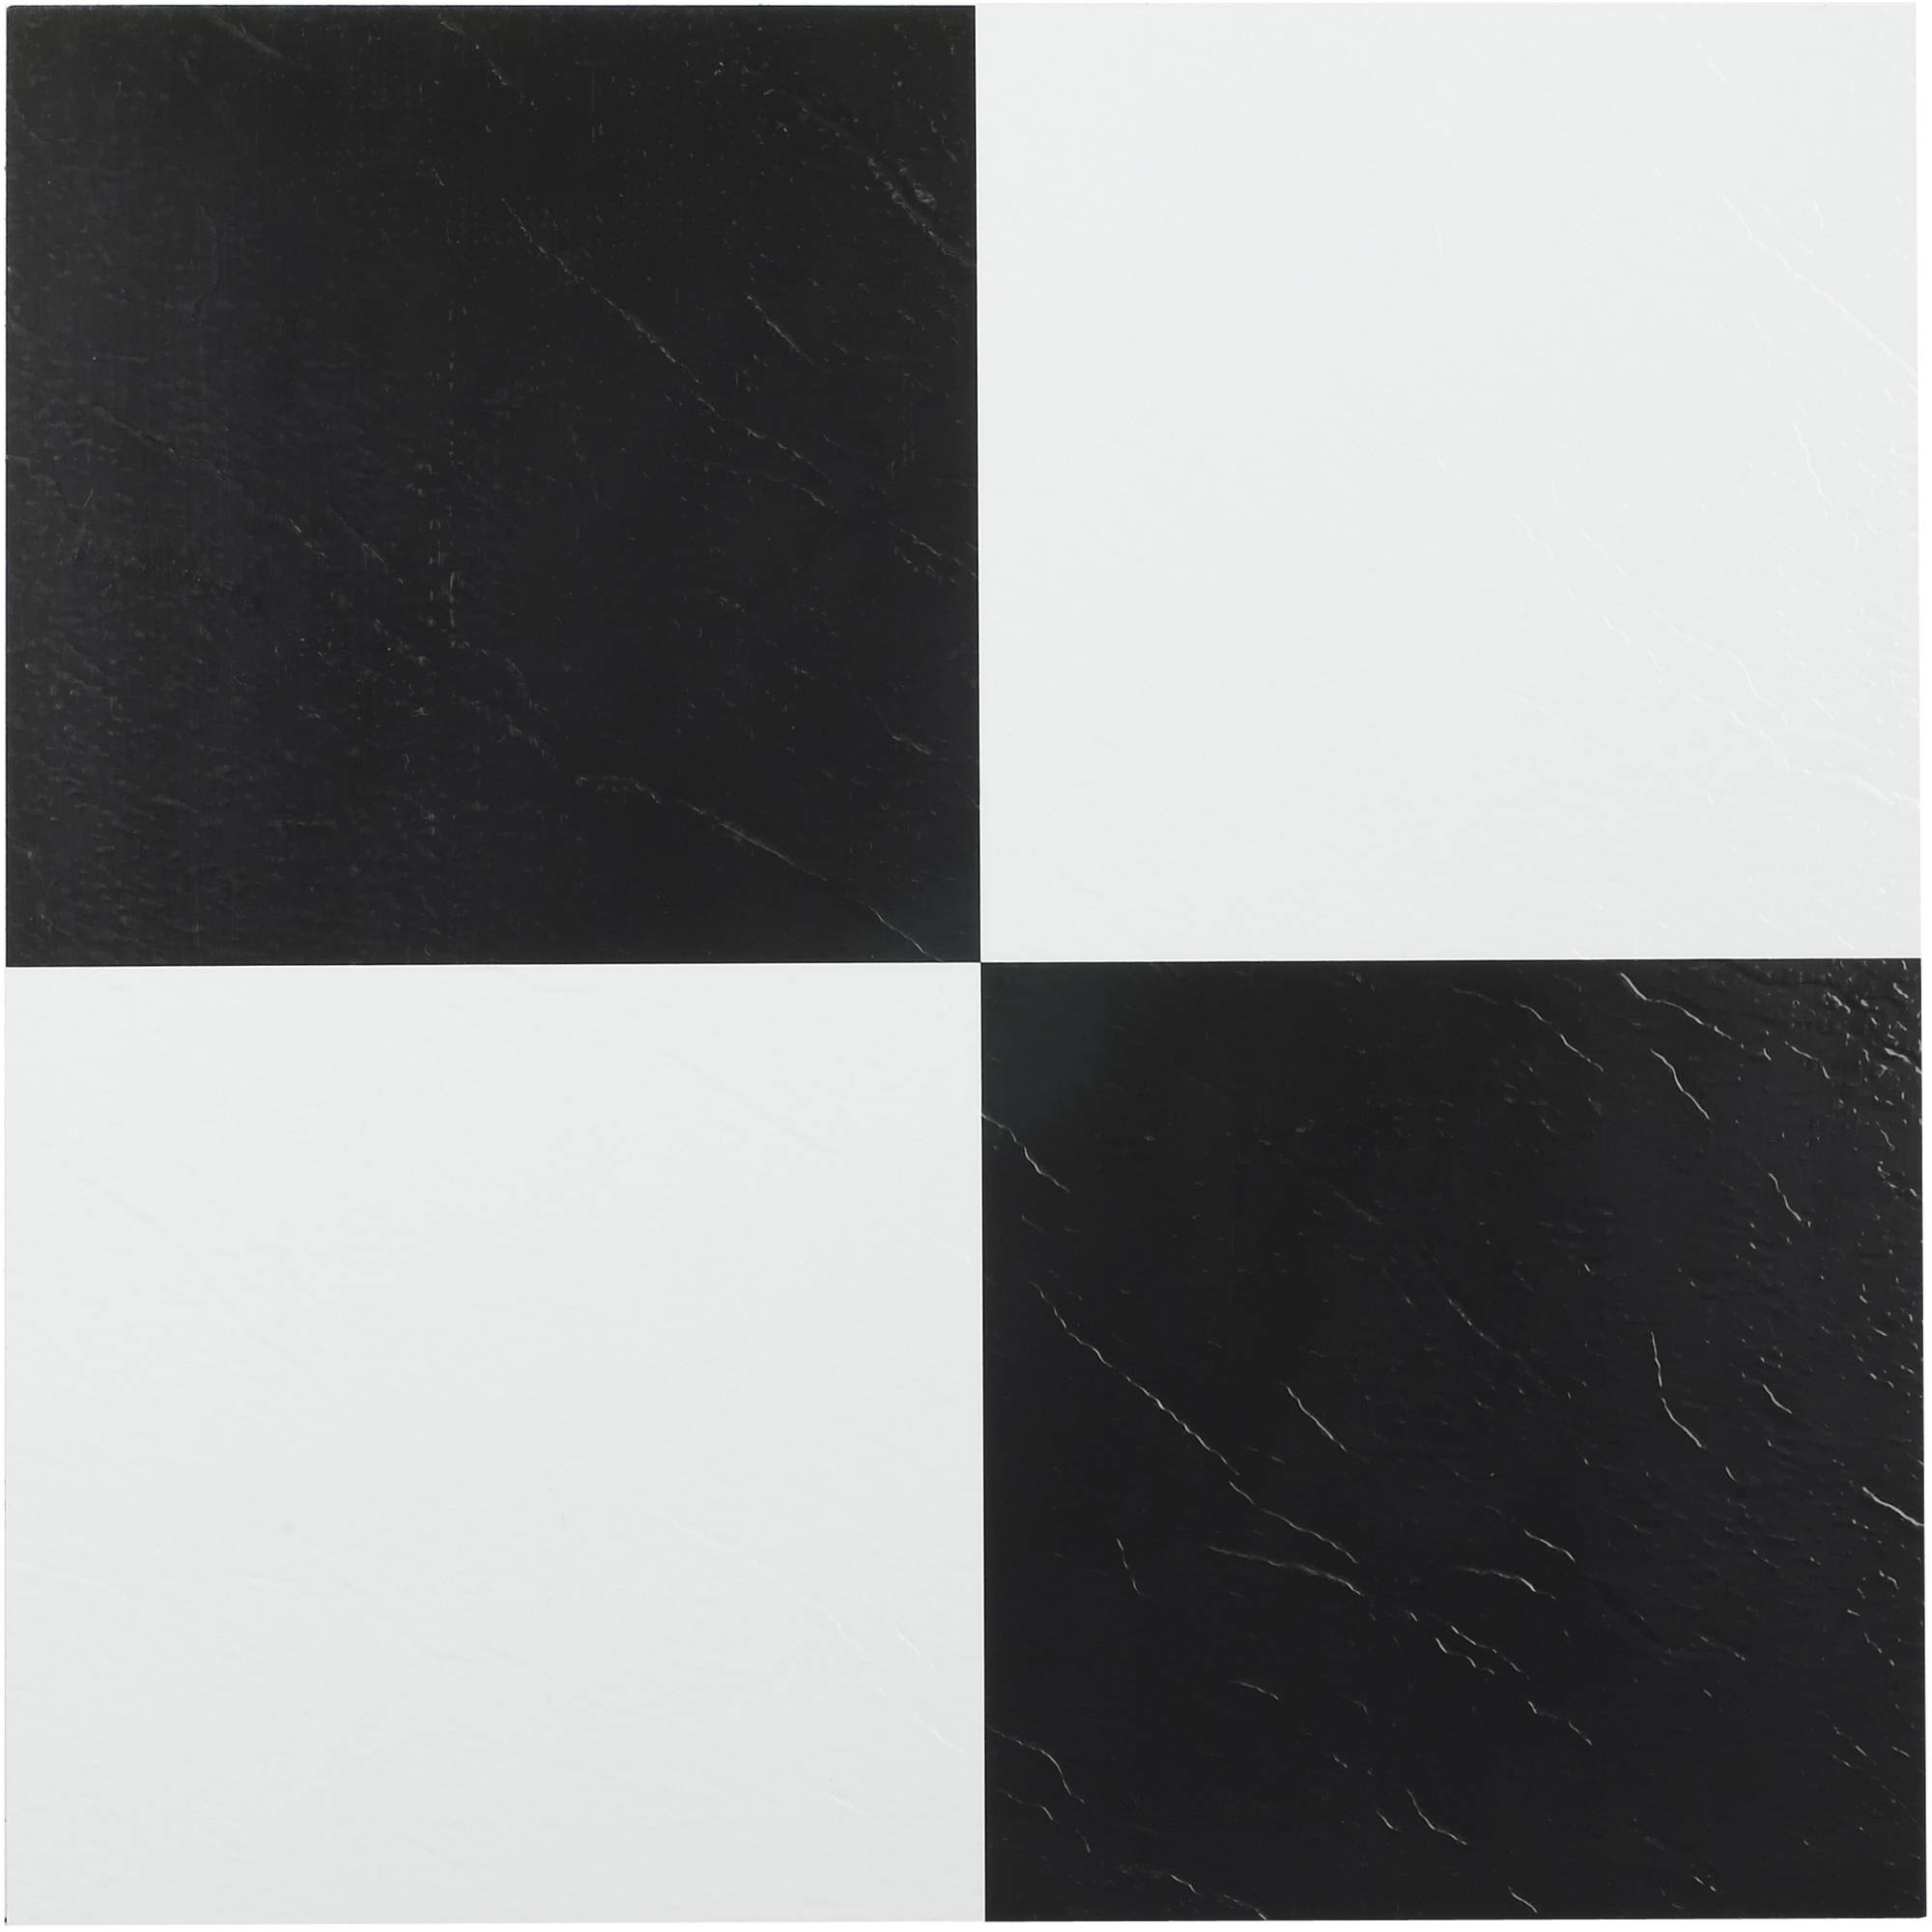 Tivoli black white 12x12 self adhesive vinyl floor tile 45 tiles tivoli black white 12x12 self adhesive vinyl floor tile 45 tiles45 sqft walmart dailygadgetfo Image collections